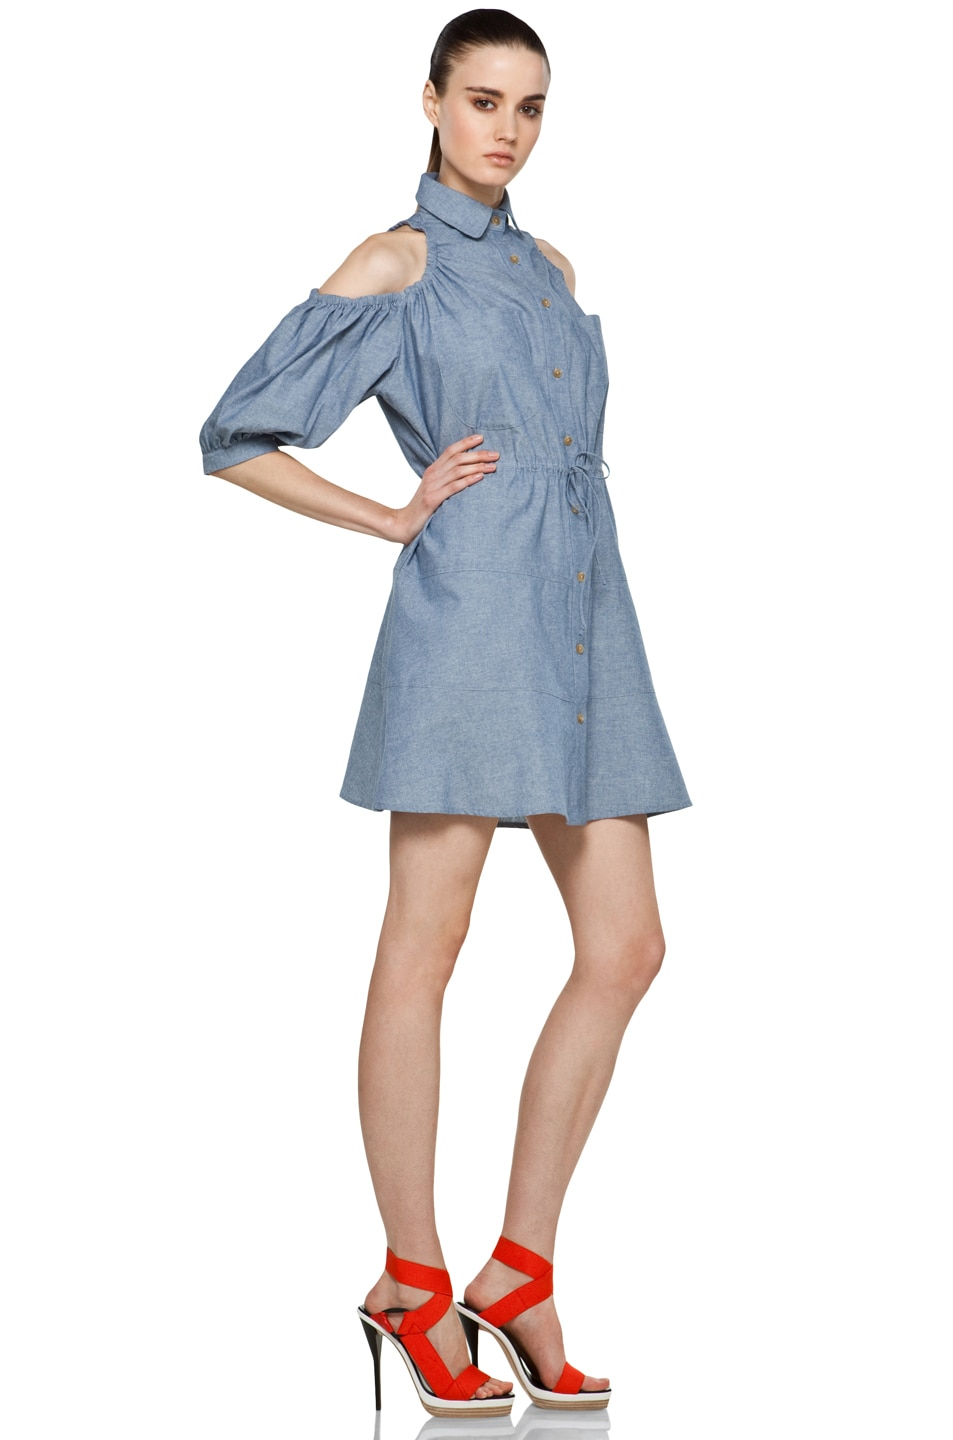 Image 3 of Chloe Sevigny for Opening Ceremony Cut Out Shoulder Blouse Dress in Chambray Blue